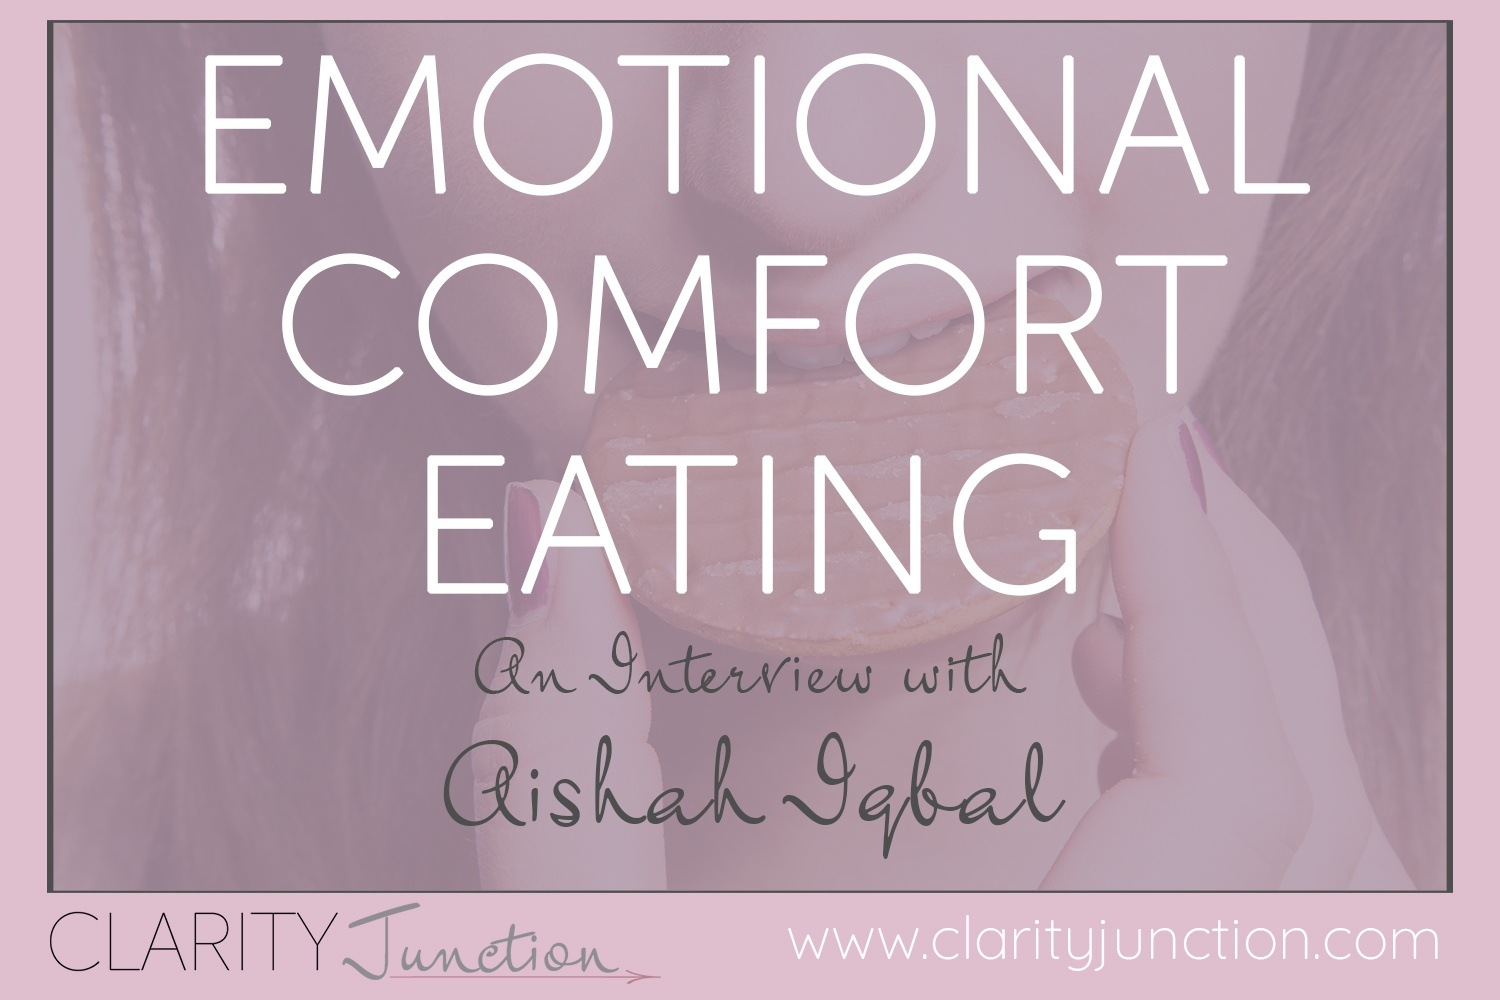 Emotional Comfort Eating